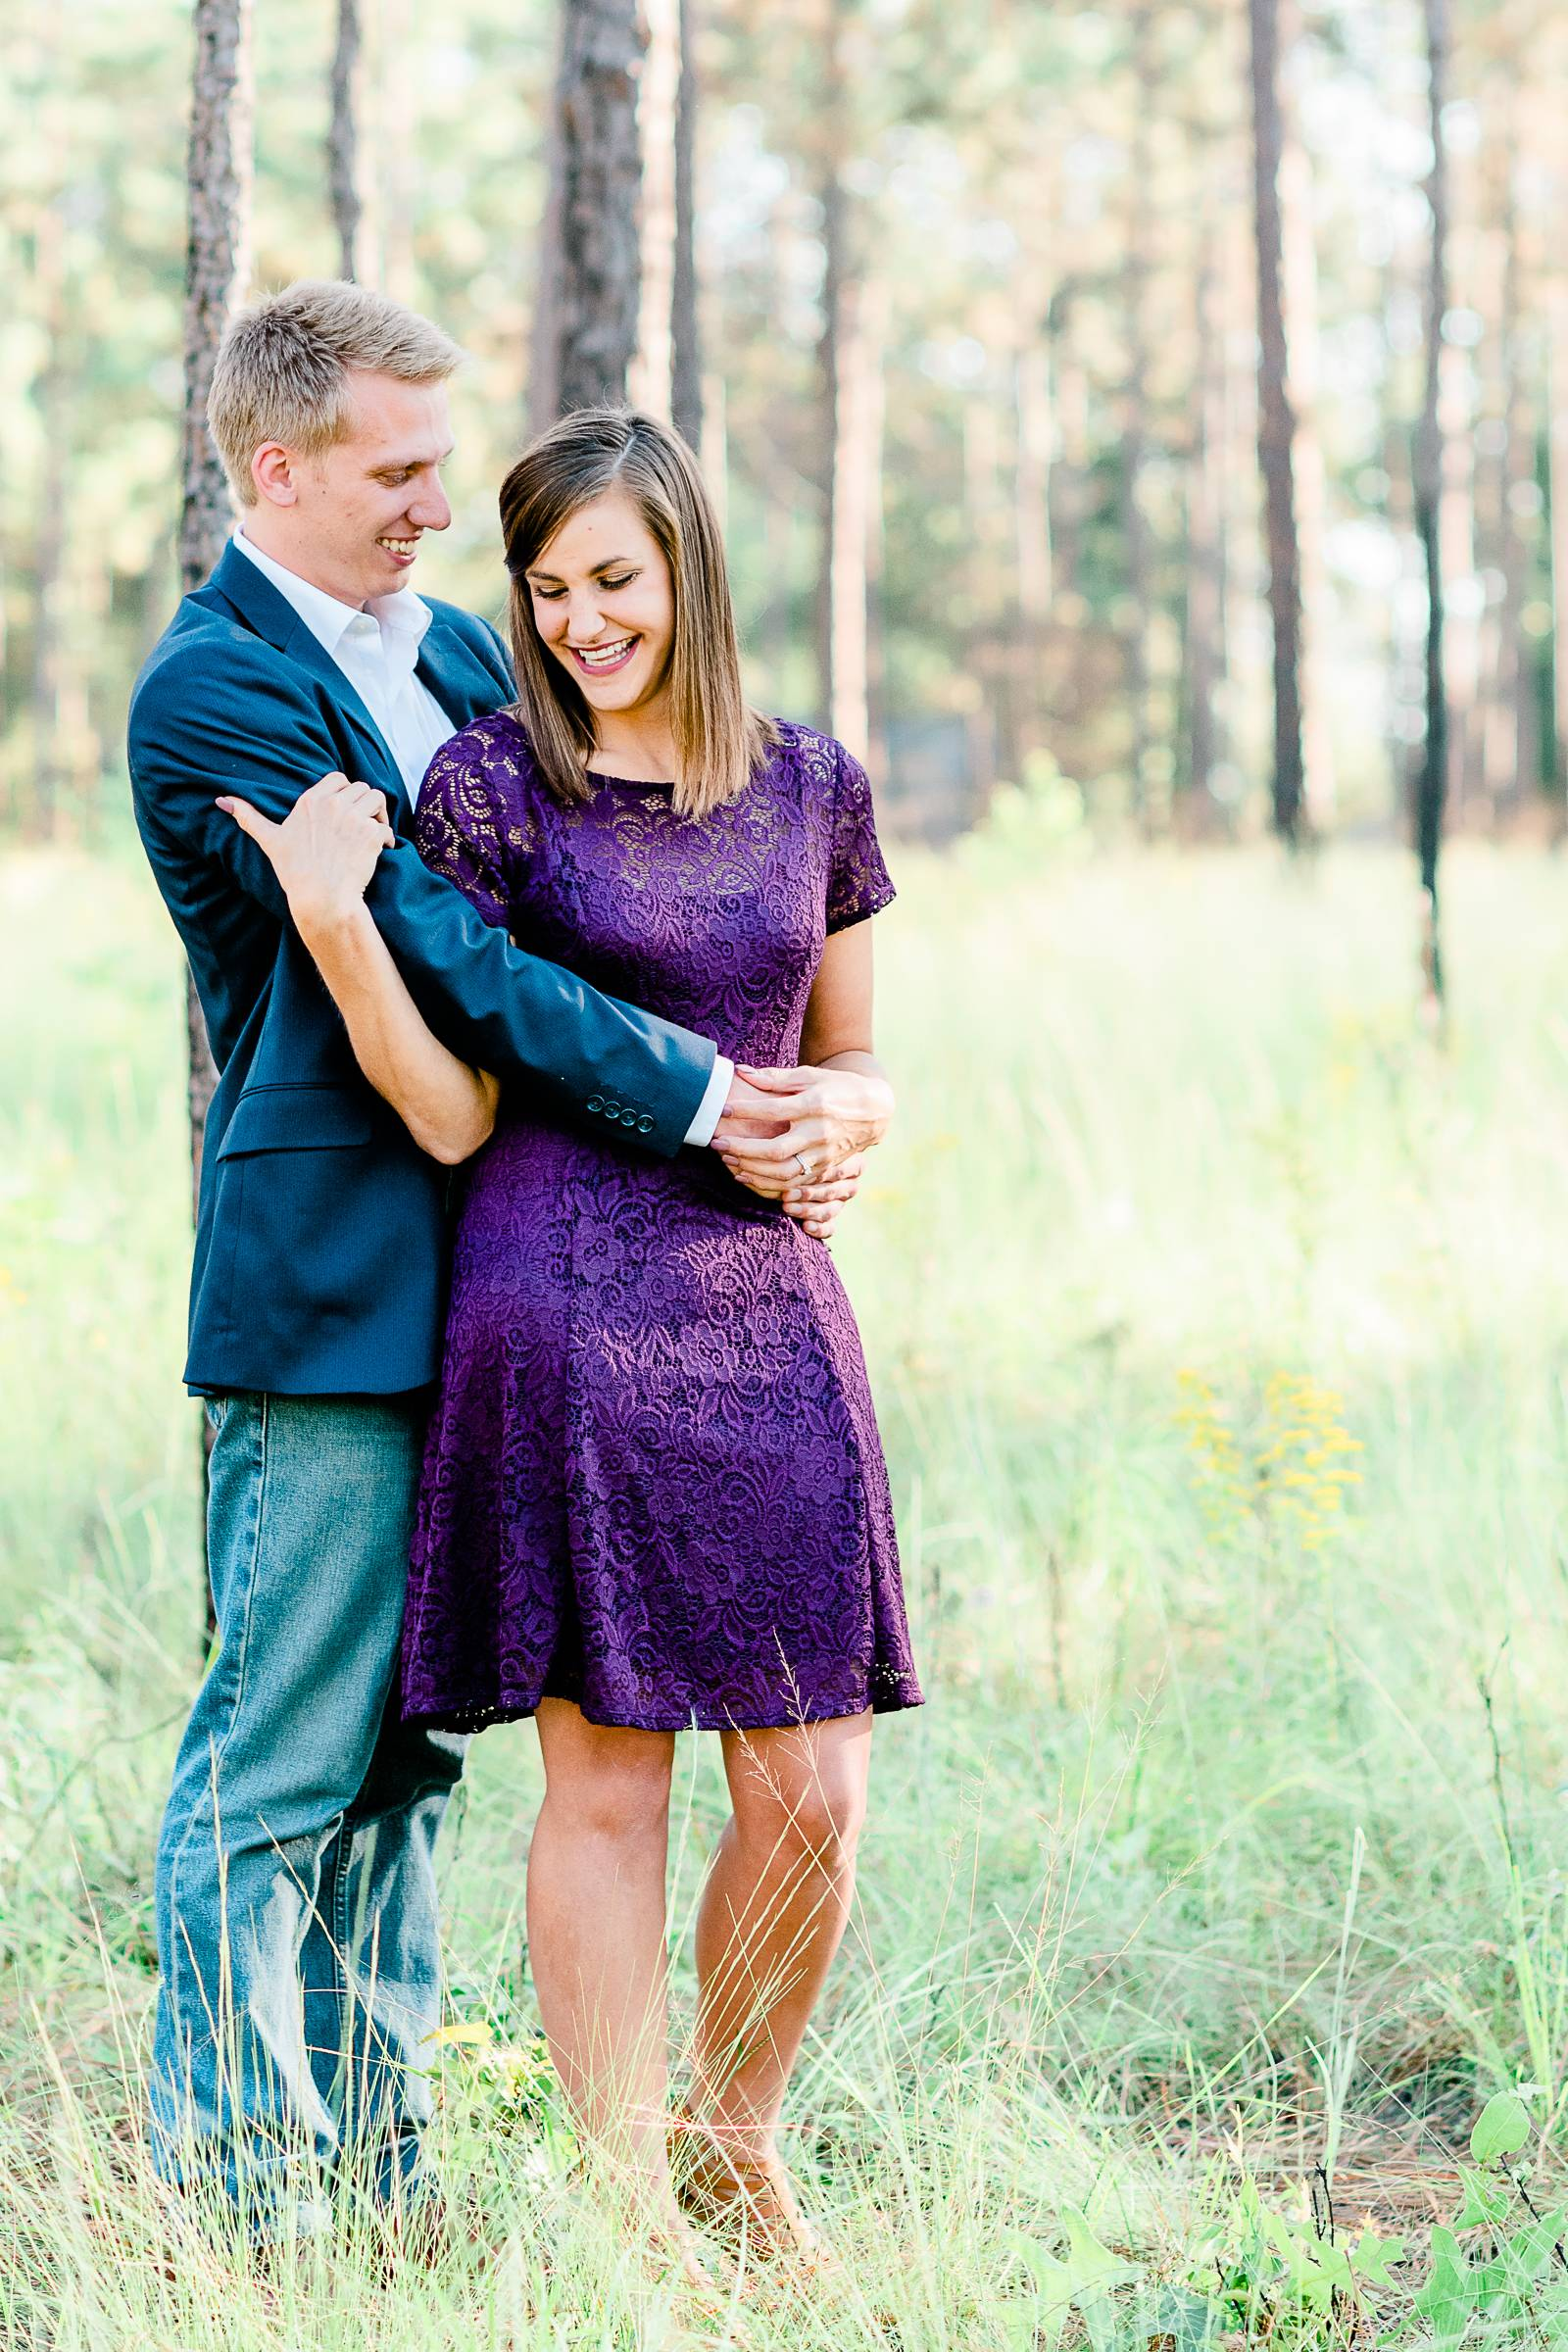 man hugging woman in purple dress for engagement session